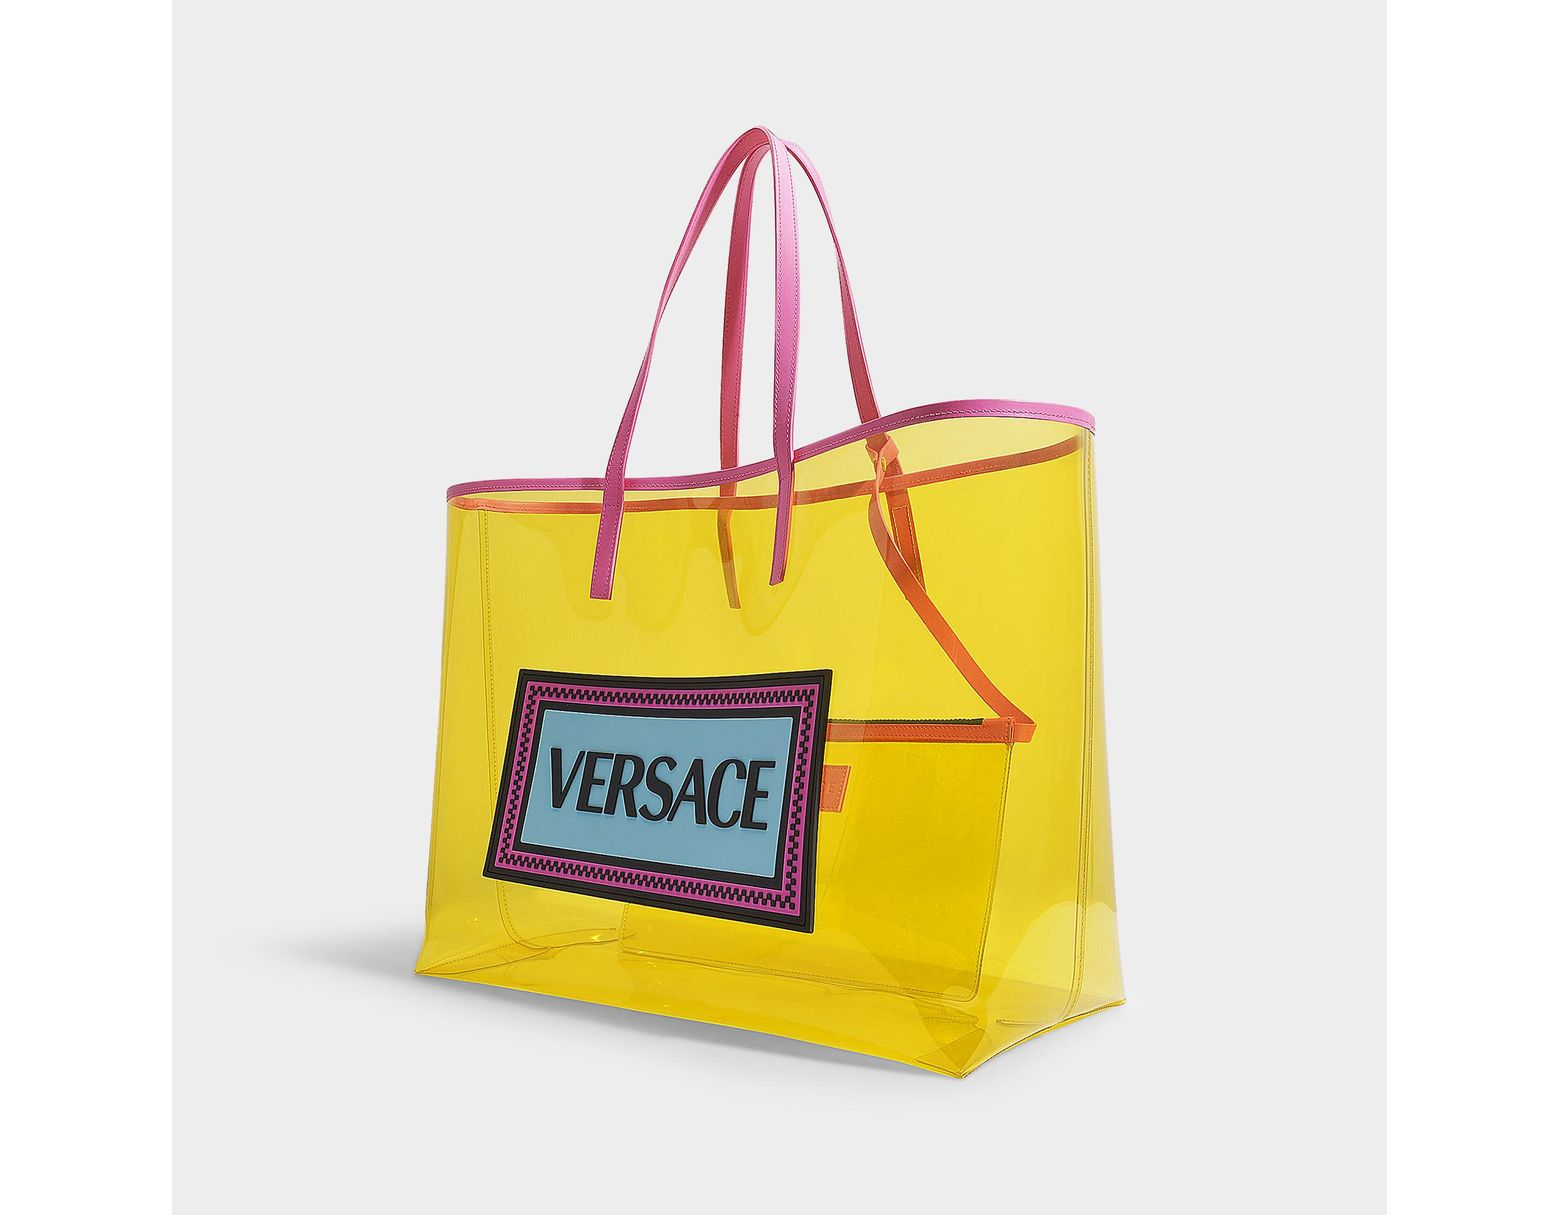 cfefc866538 Versace 90's Vintage Logo Soft Tote In Yellow Clear Vinyl in Yellow - Save  52% - Lyst